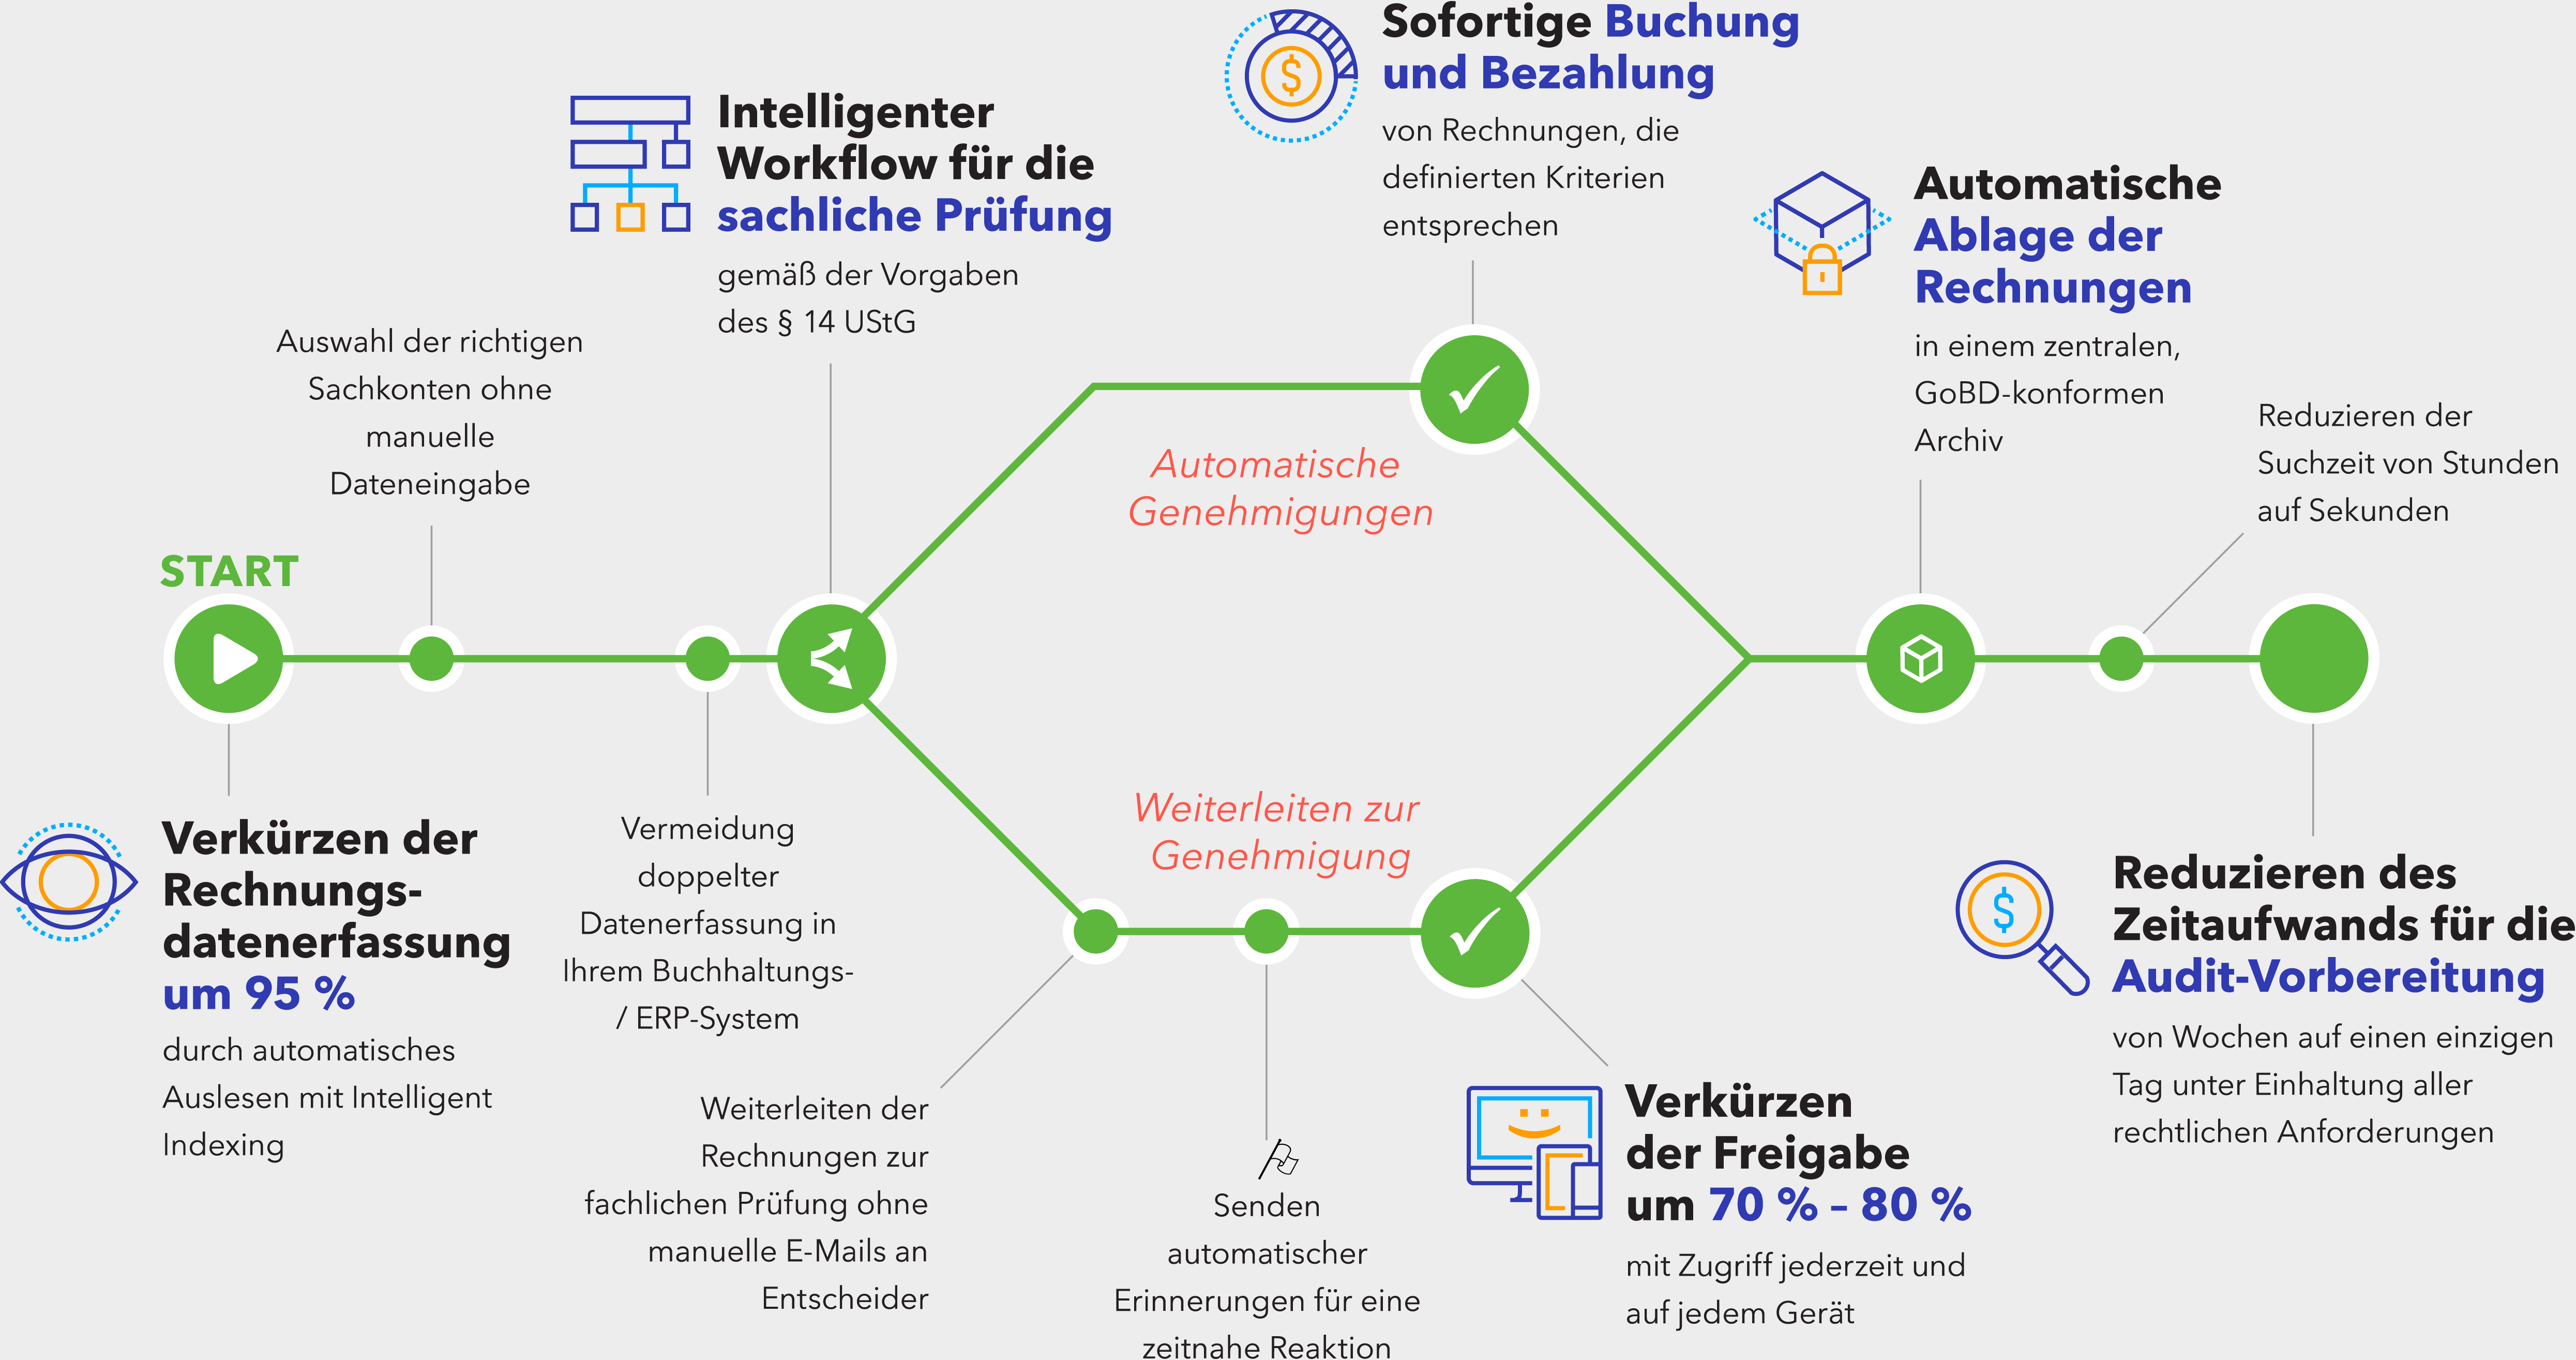 Dokumenten-Management & Workflow Automation mit DocuWare